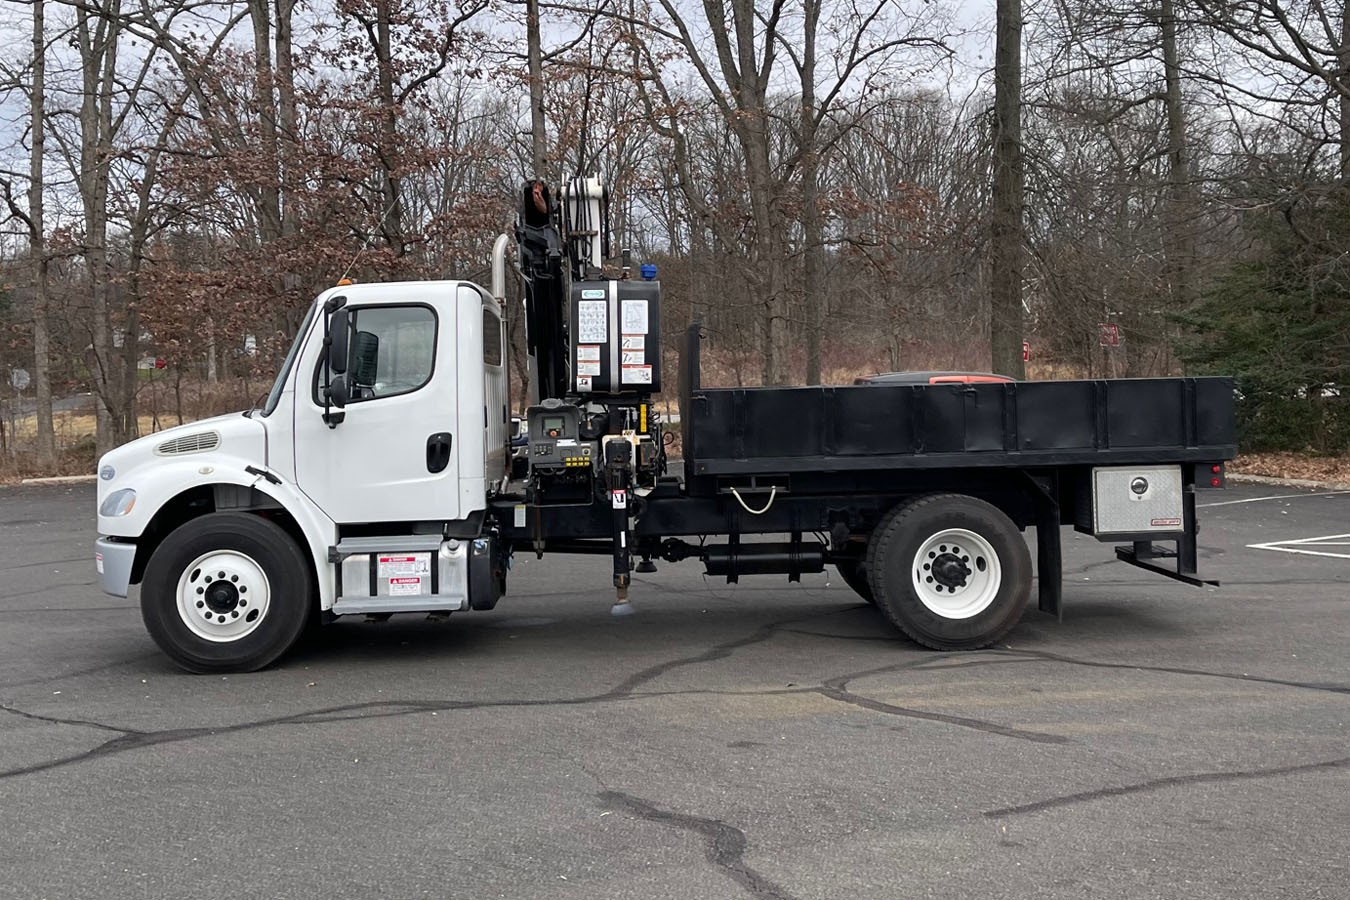 Used, 2014, Other, FREIGHTLINER M2-106 W/ 2013 PM 18023 SPLC KNUCKLEBOOM: 8 TON, Other